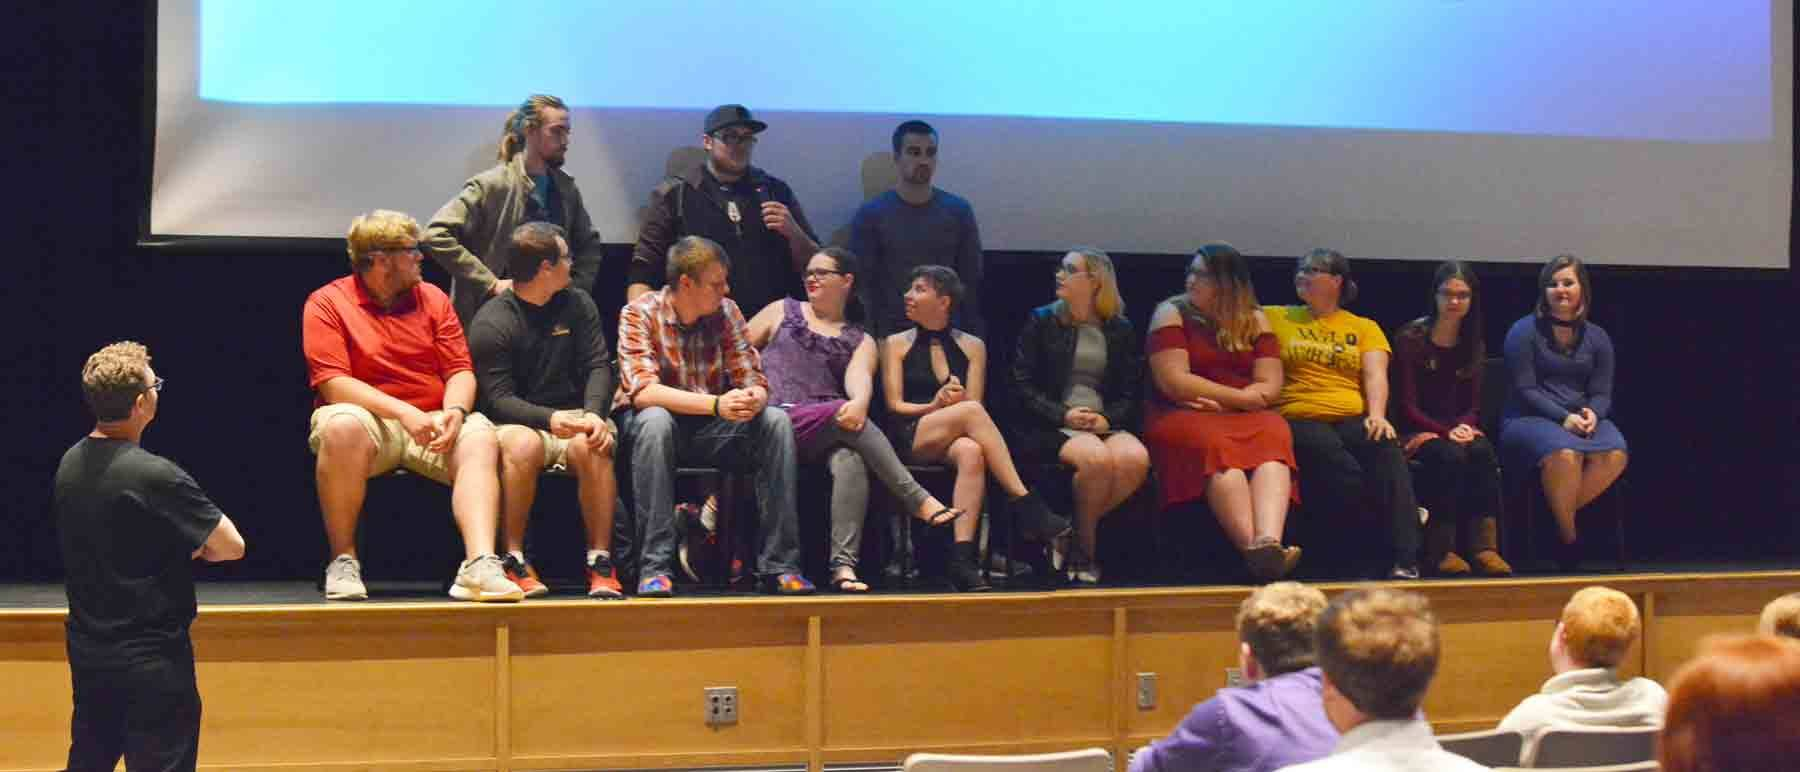 After each film was shown, the cast and crew answered questions from the audience.